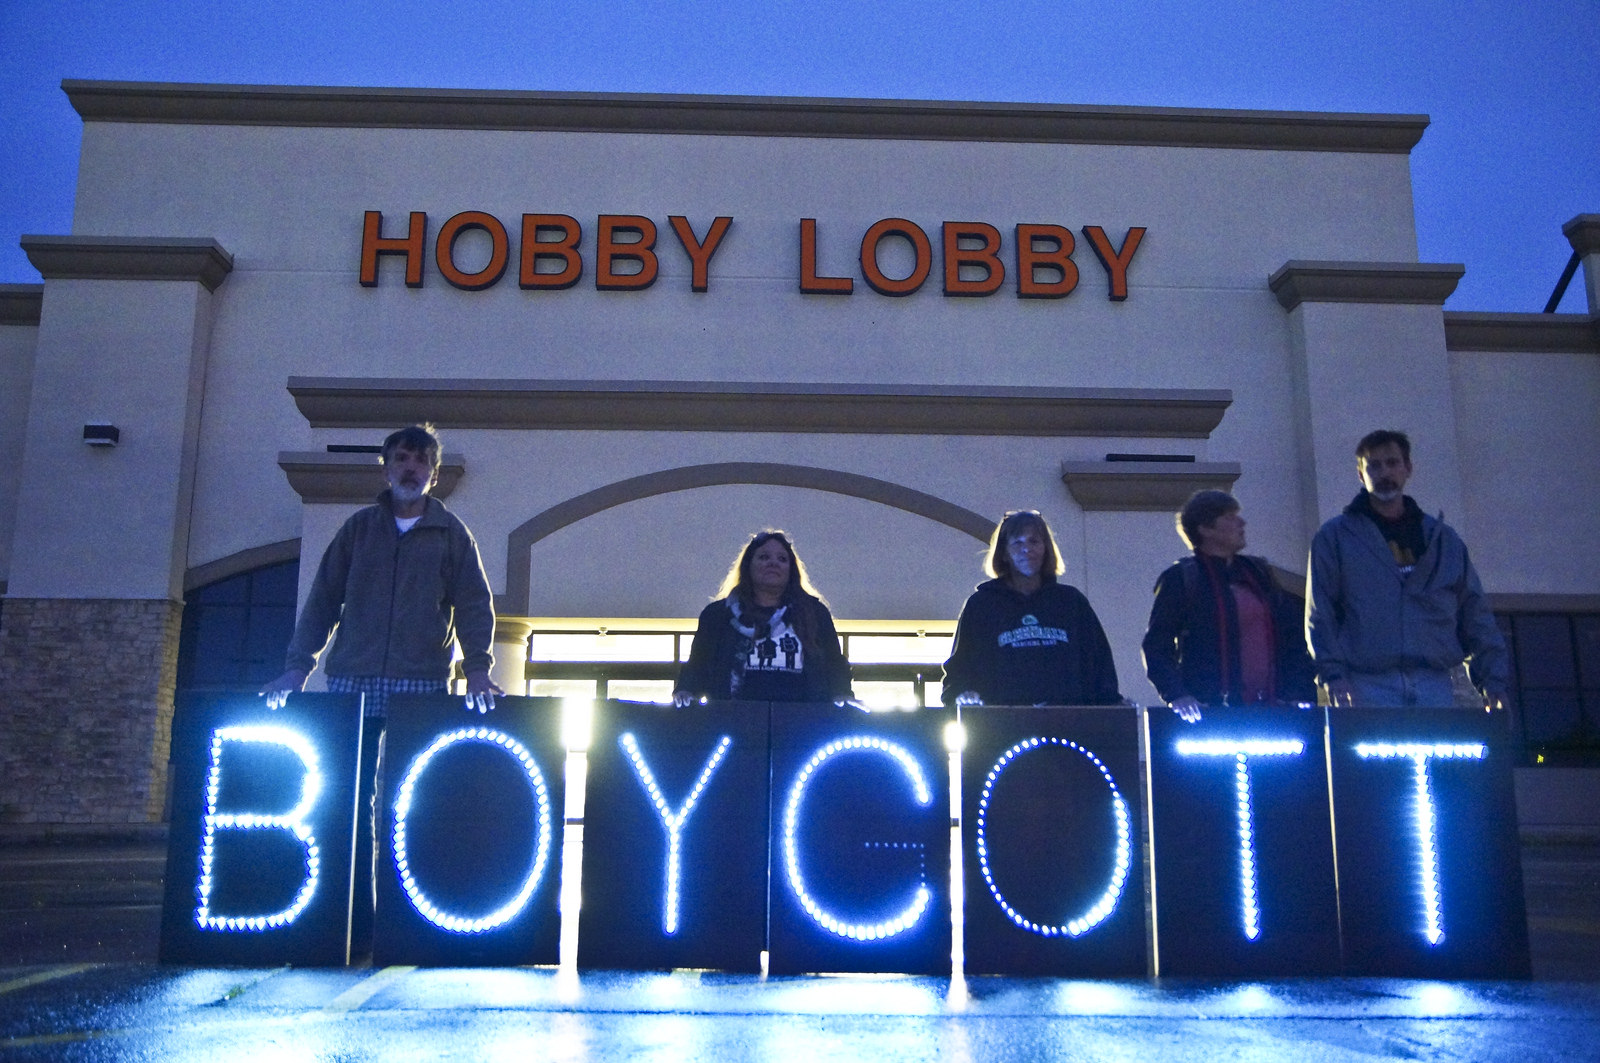 People standing in front of a Hobby Lobby store with boycott signs